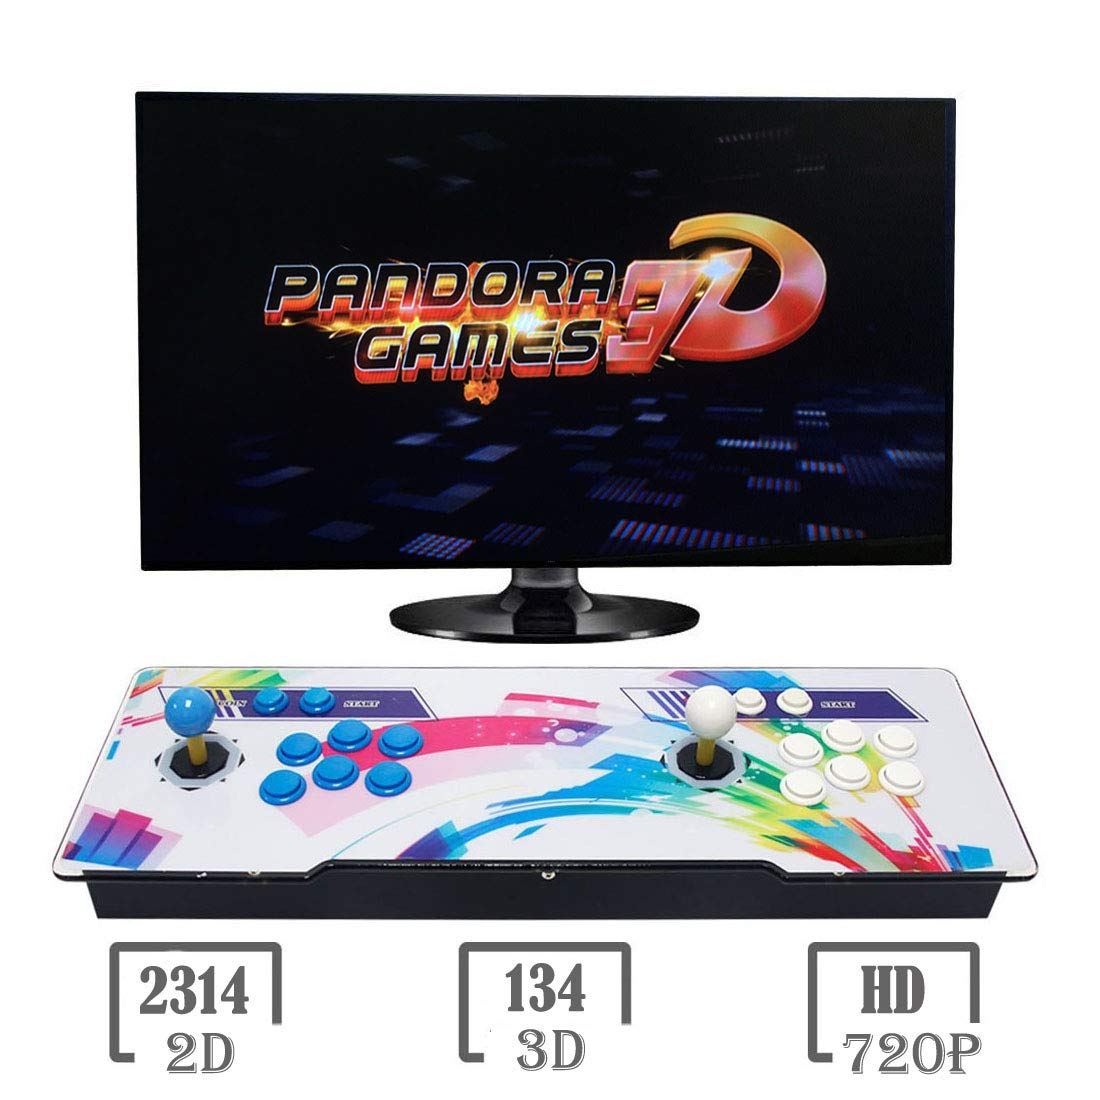 3D Pandora Key 7 Games Arcade Console | 2448 Games Installed | Support 3D Games | Add More Games | Search & Save Games Function | 1280x720P | Support 4 Players Online | HDMI/VGA/USB/AUX Audio Output